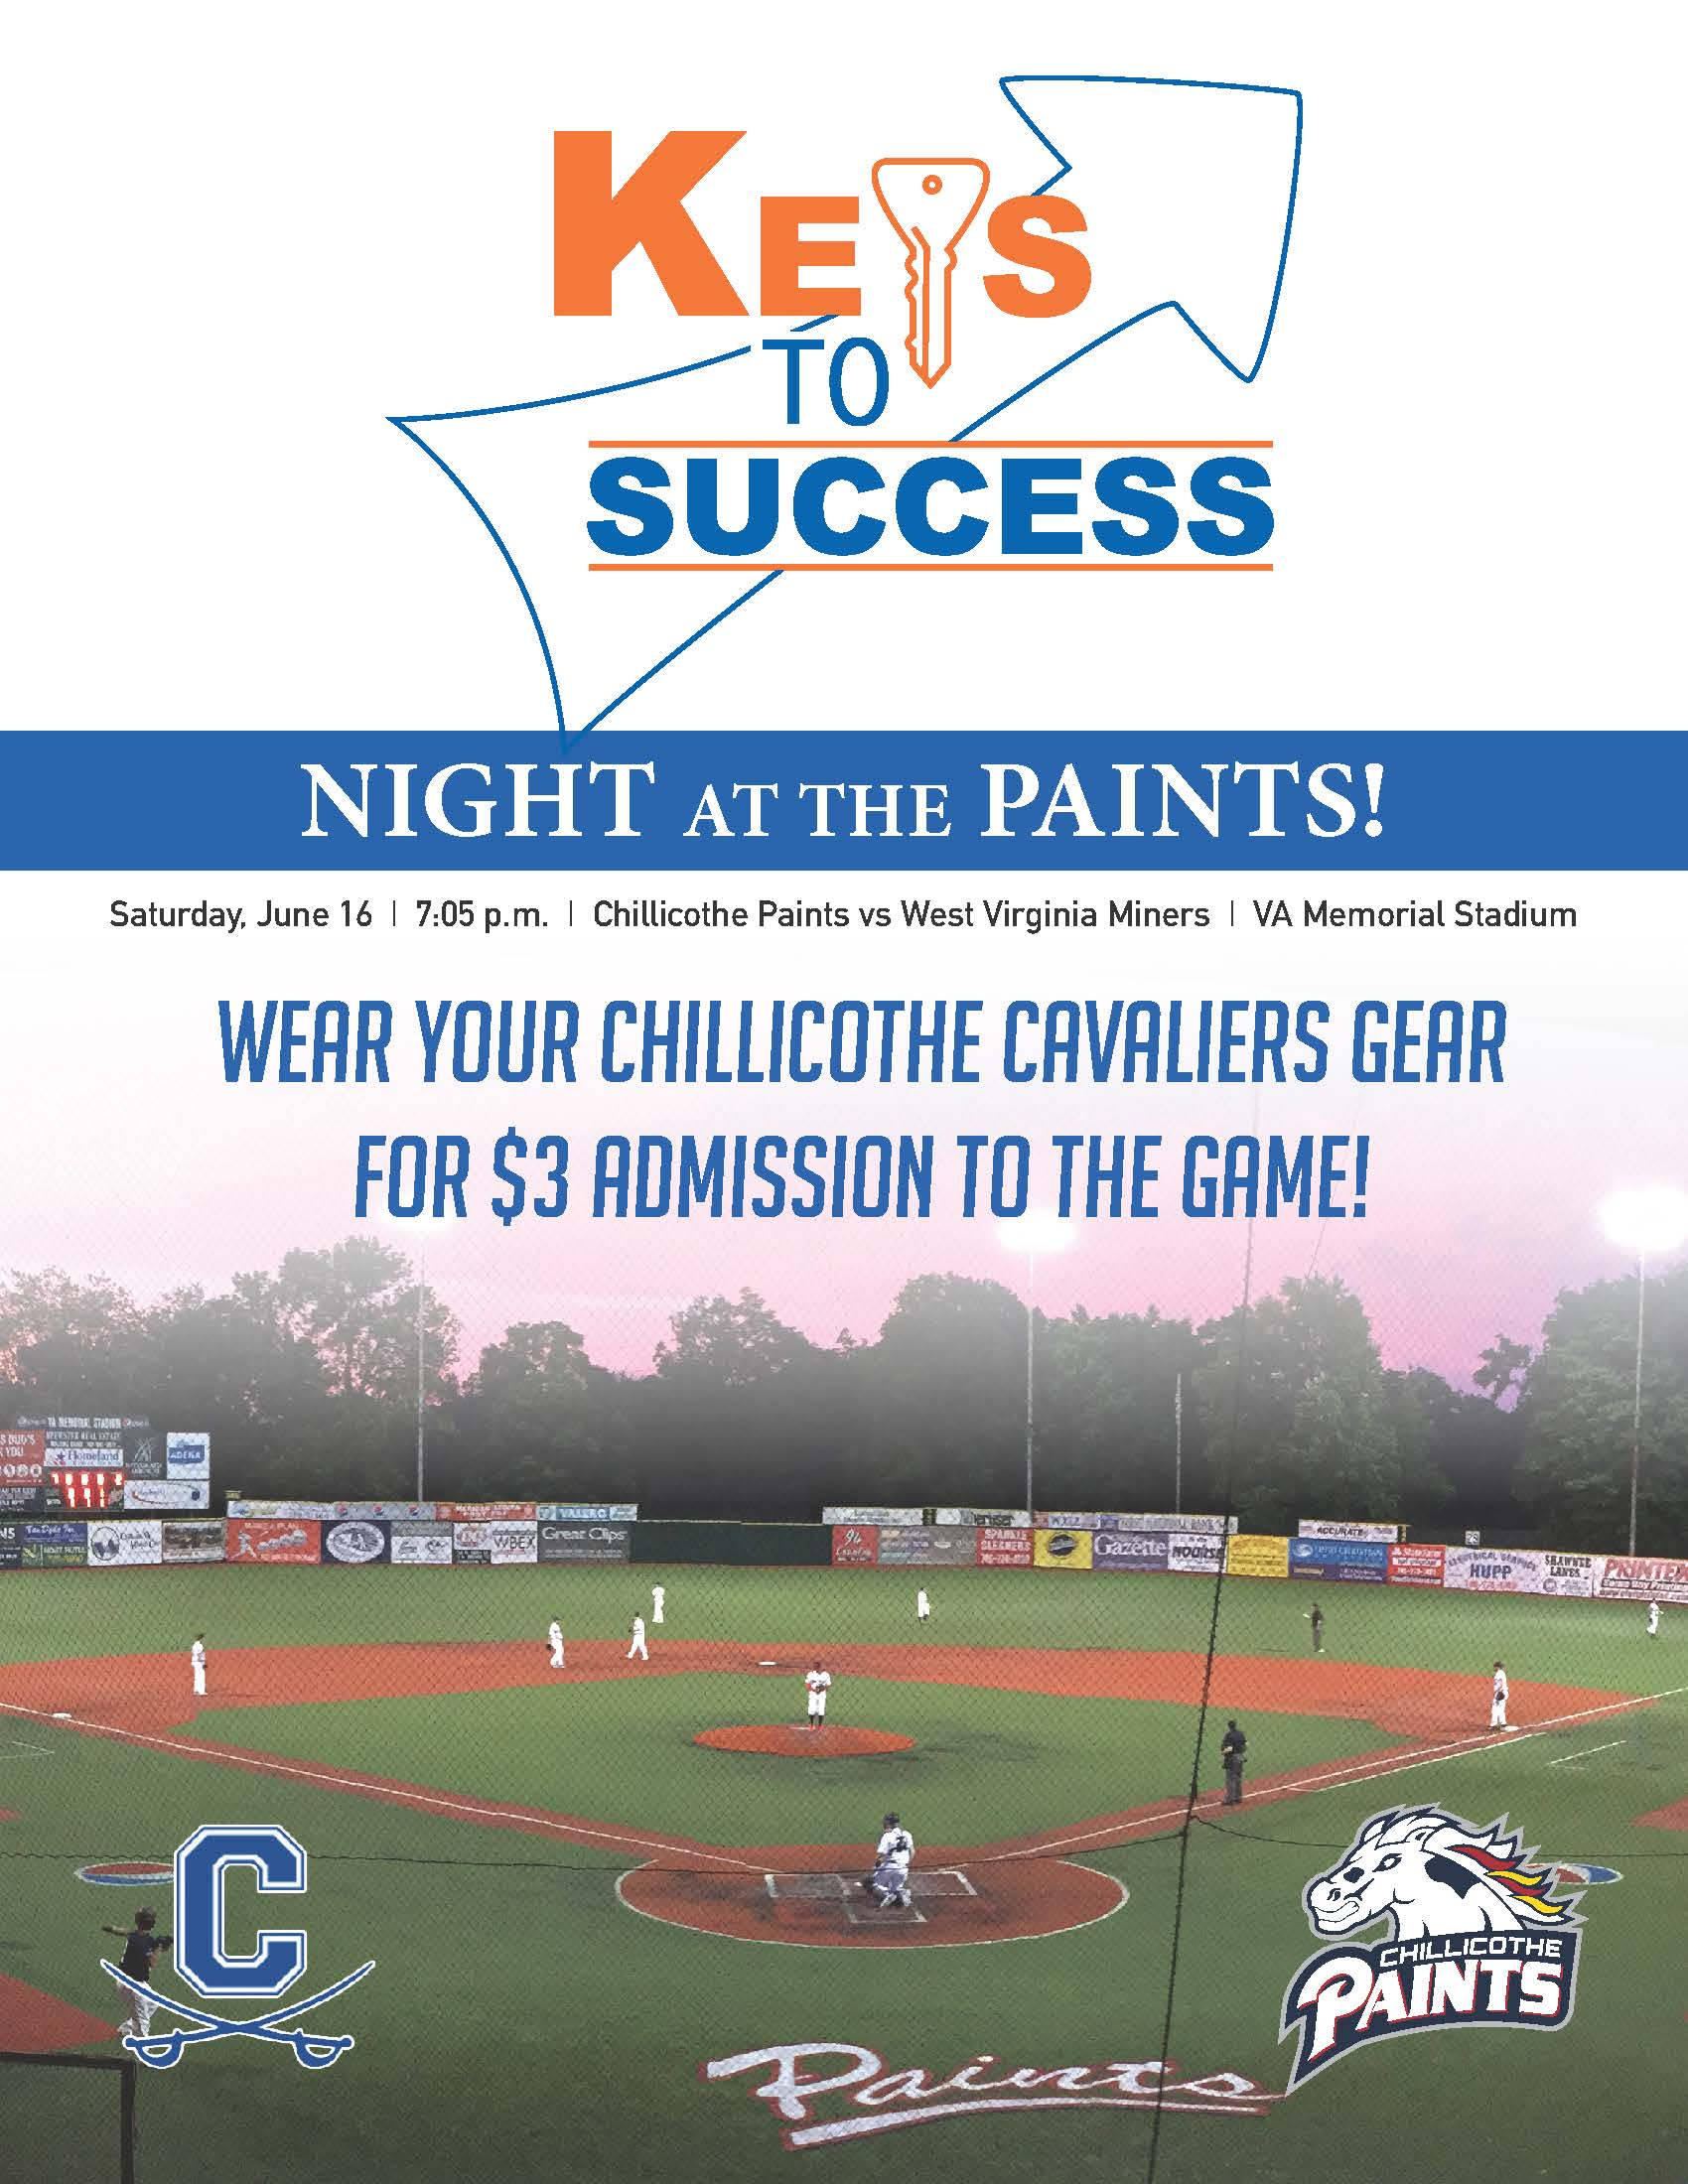 Keys to Success at Chillicothe Paints